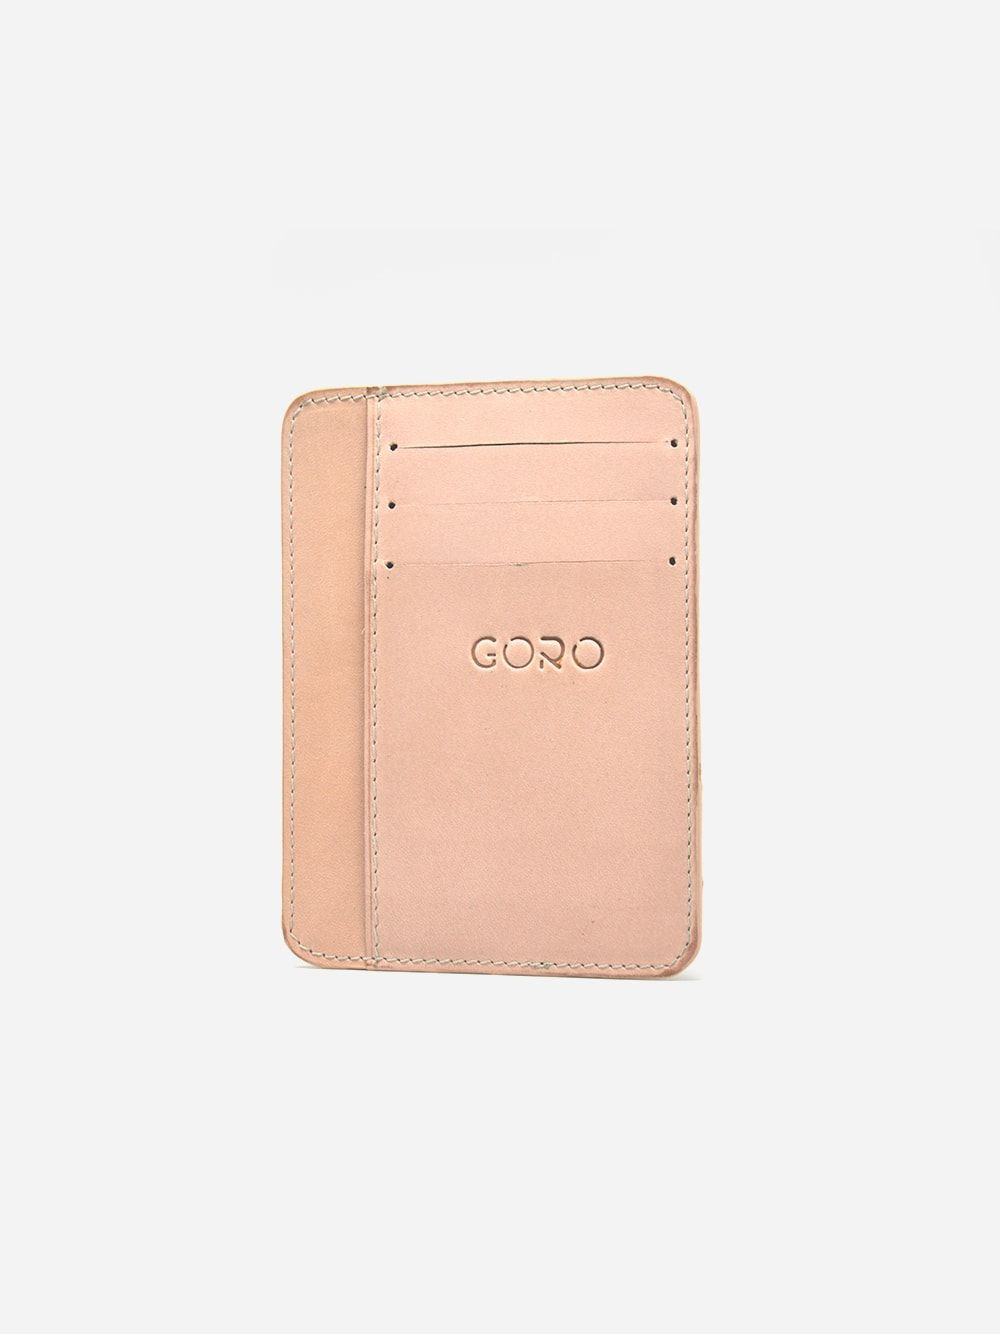 Nude Card Holder Marc | Goro